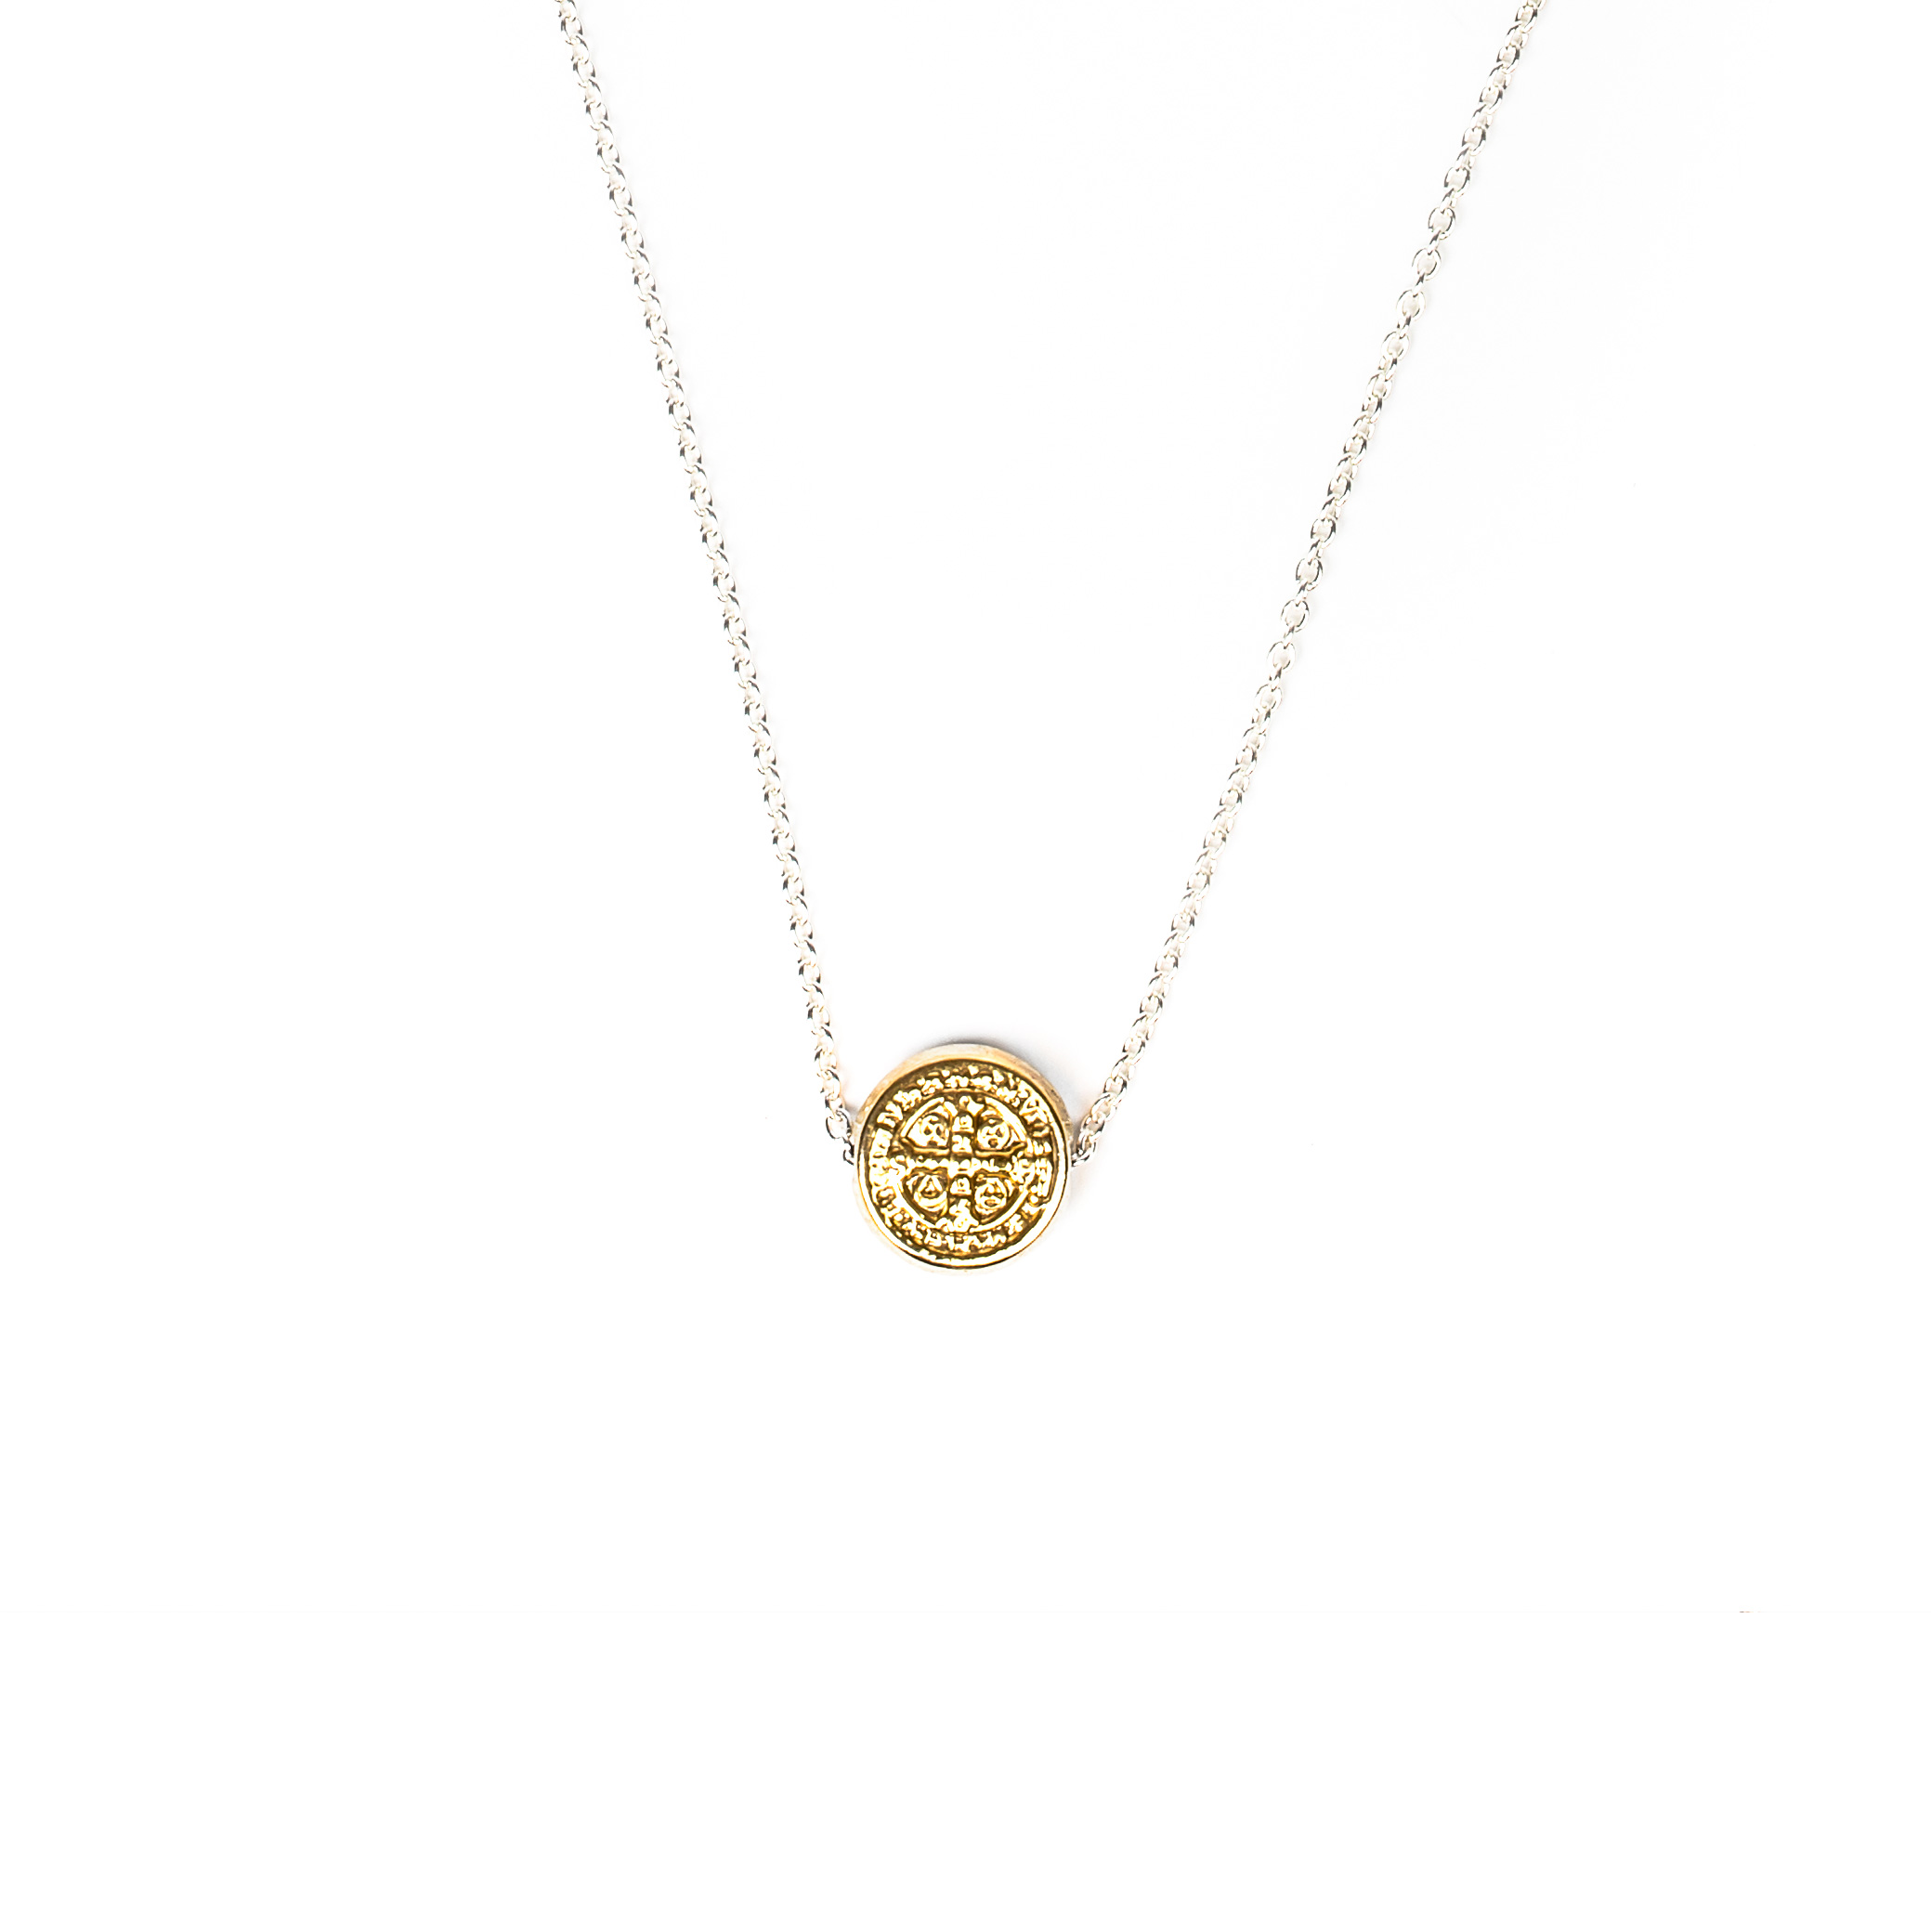 expertissim chain and baptism medal necklace cross gold